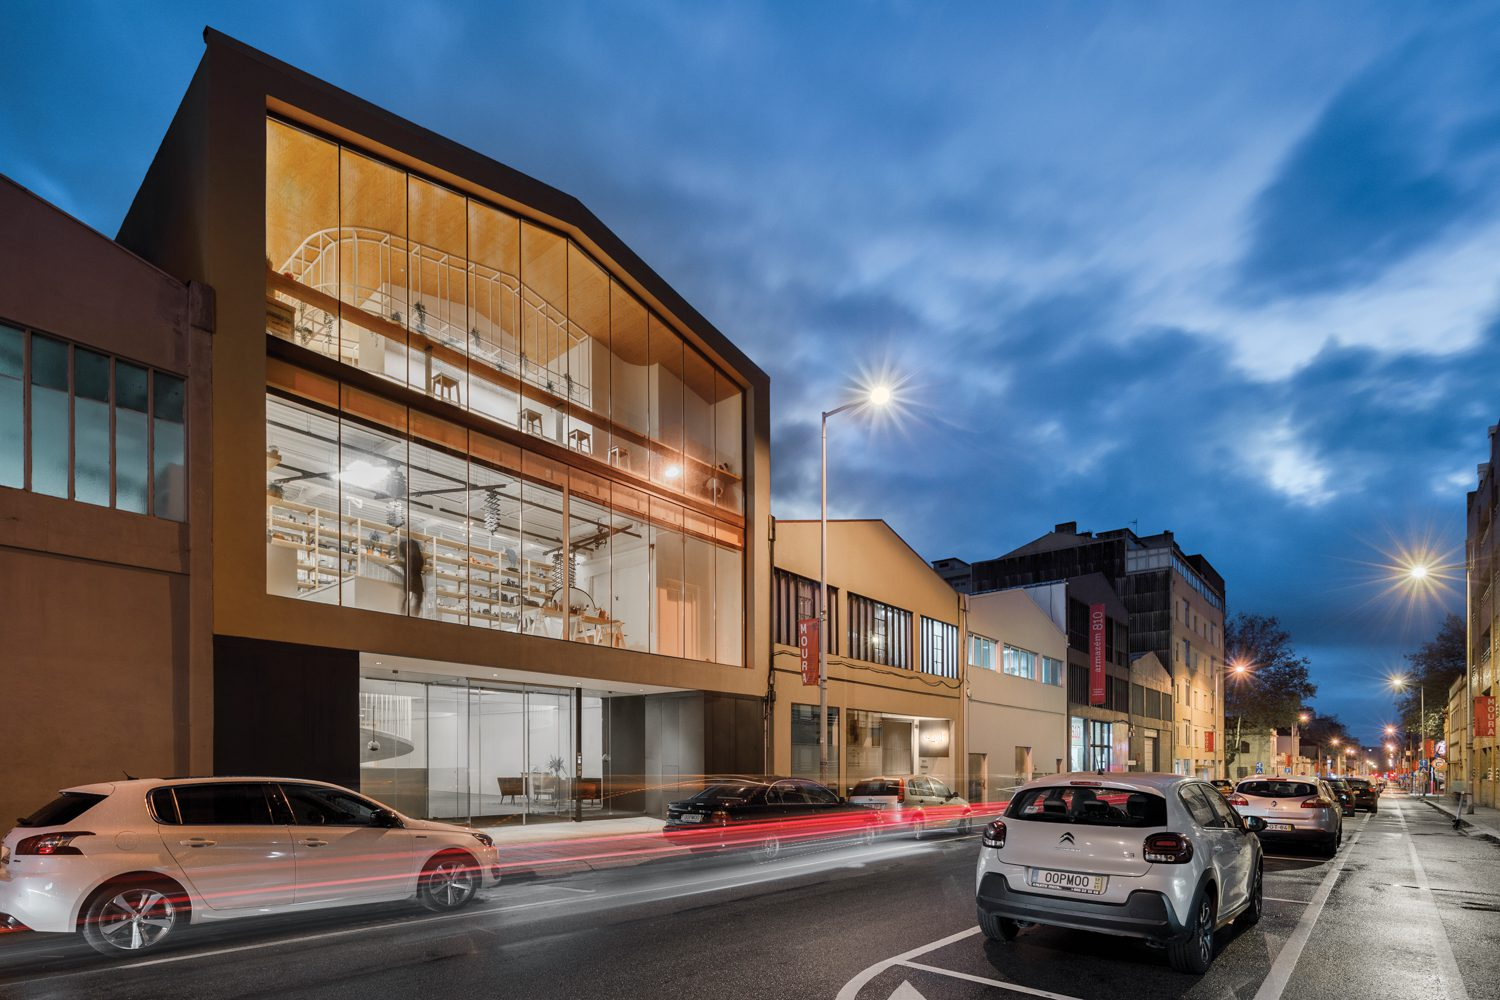 City ordinances required that the new building match the height and pitched roofs of the surrounding warehouses, but extensive glazing allows passersby to view into the photo studio and café on the second and third floors.